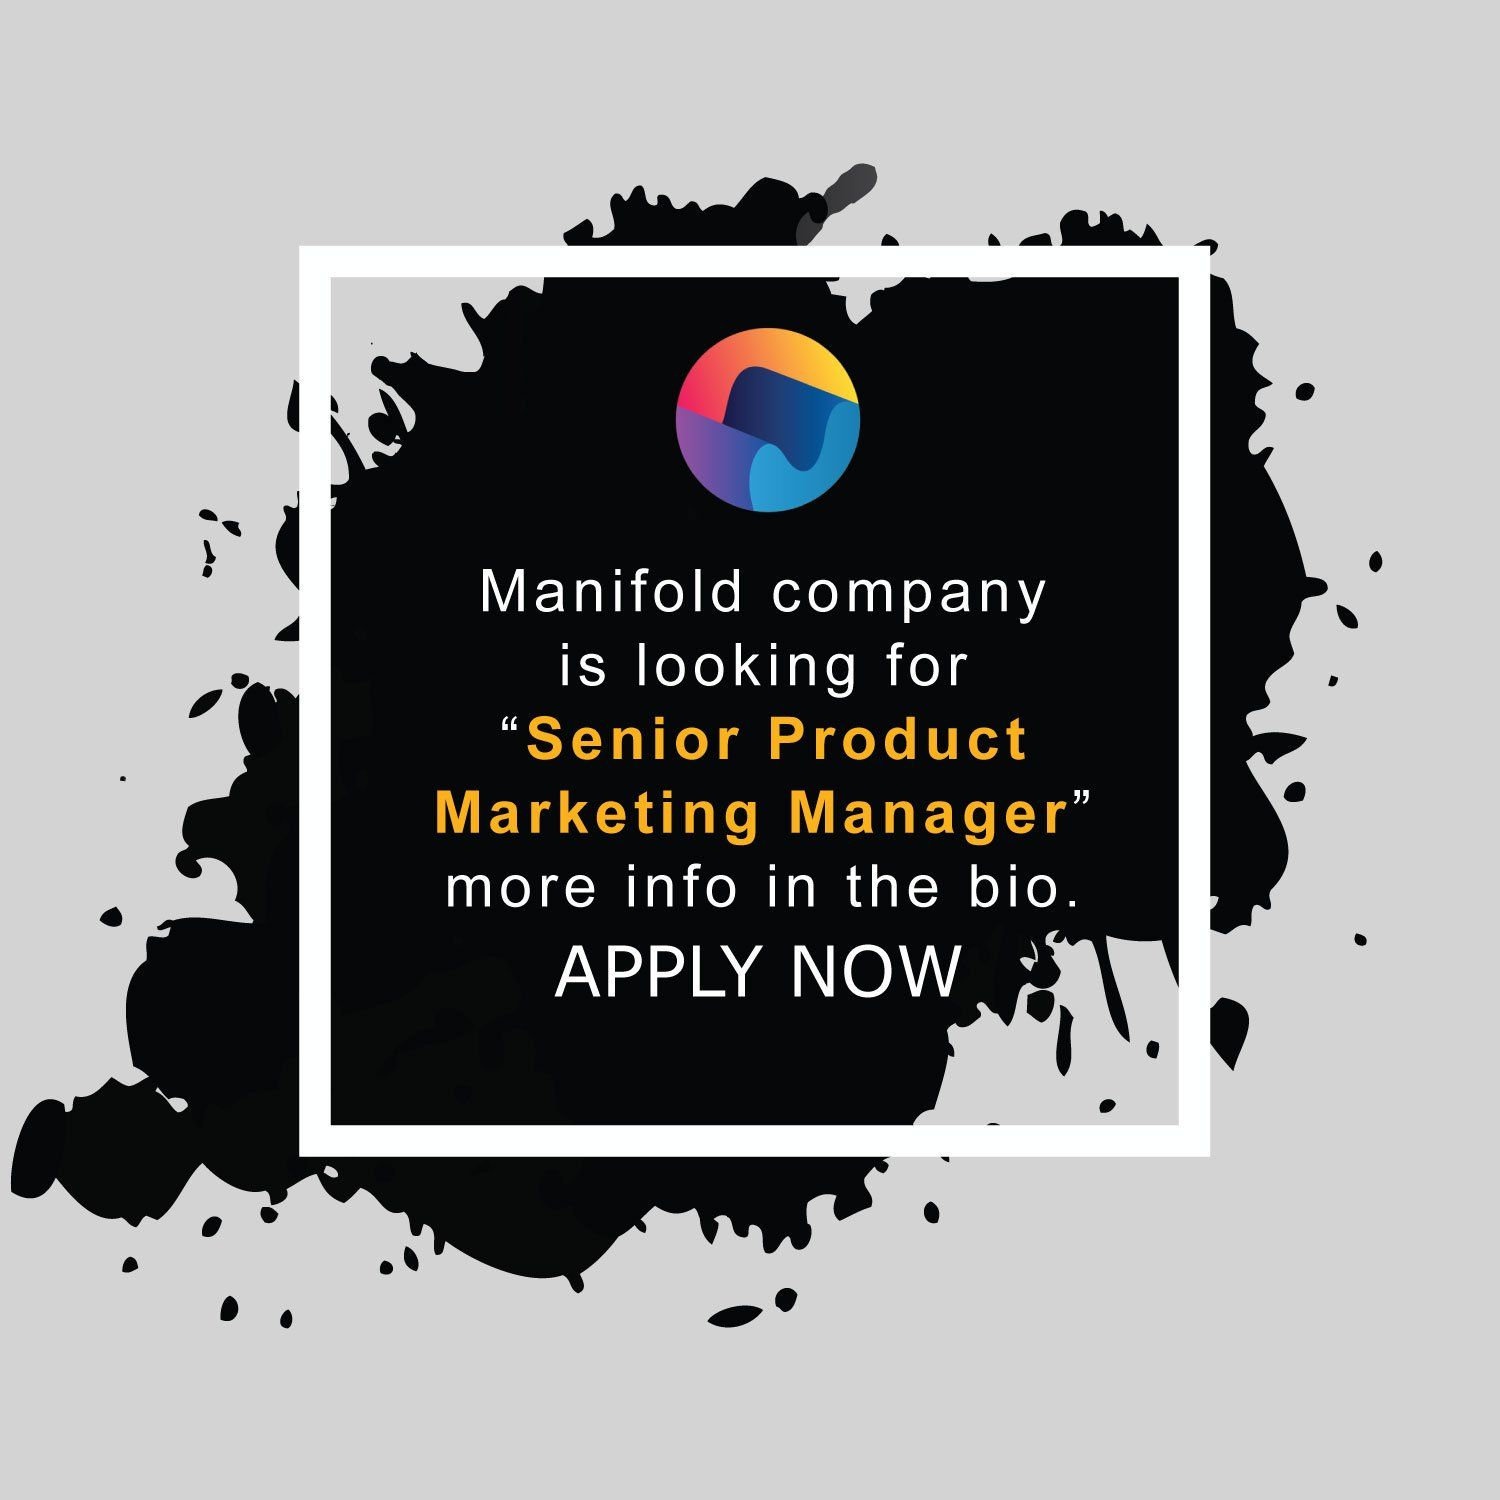 New Remote job opening from Manifold Remote jobs, Online